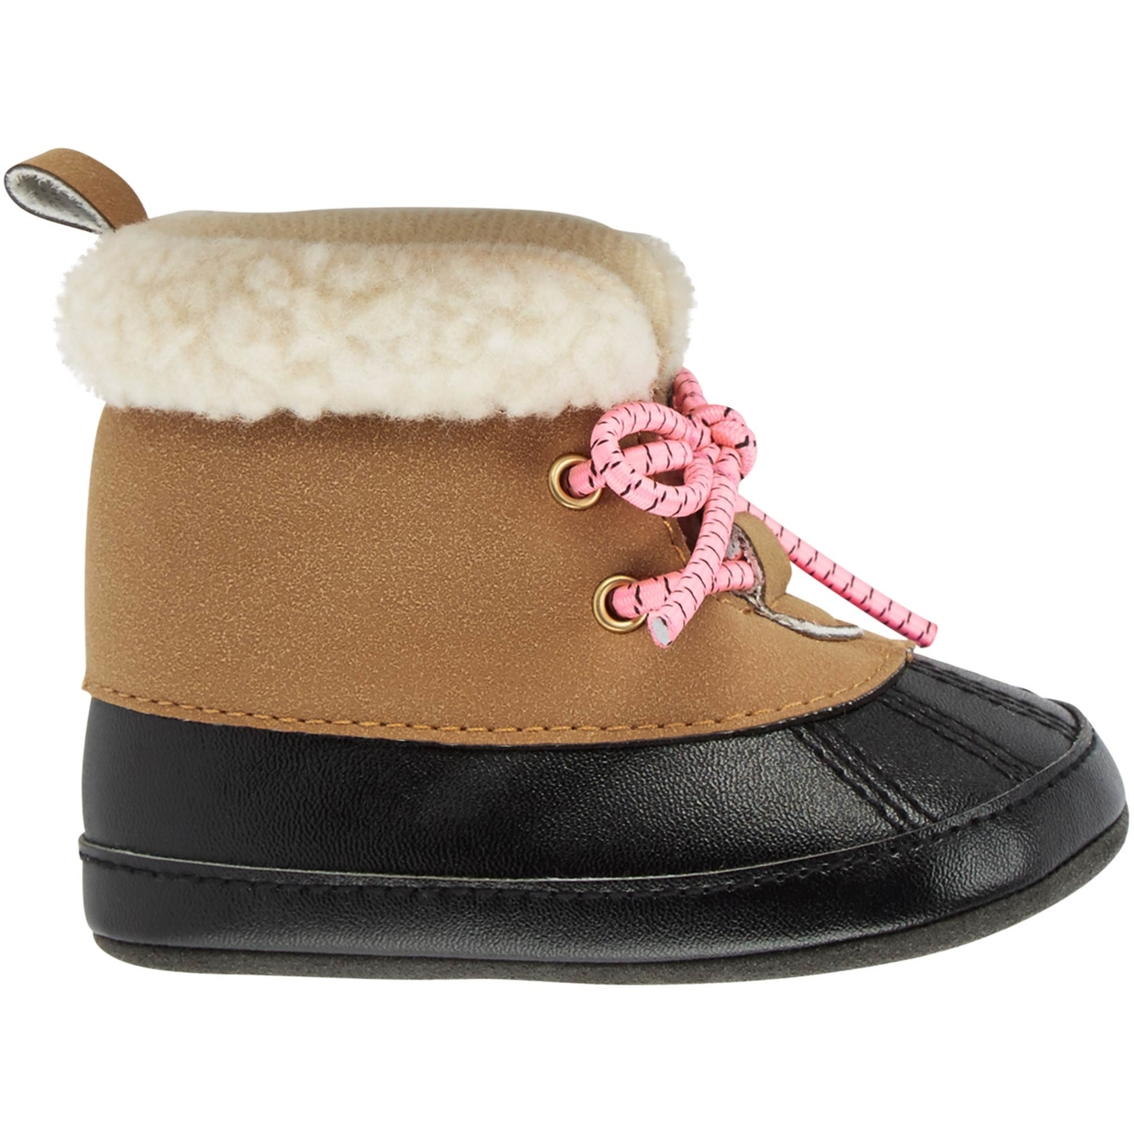 29d81ddb313 Carter's Infant Girls Duck Boots | Boots | Shoes | Shop The Exchange